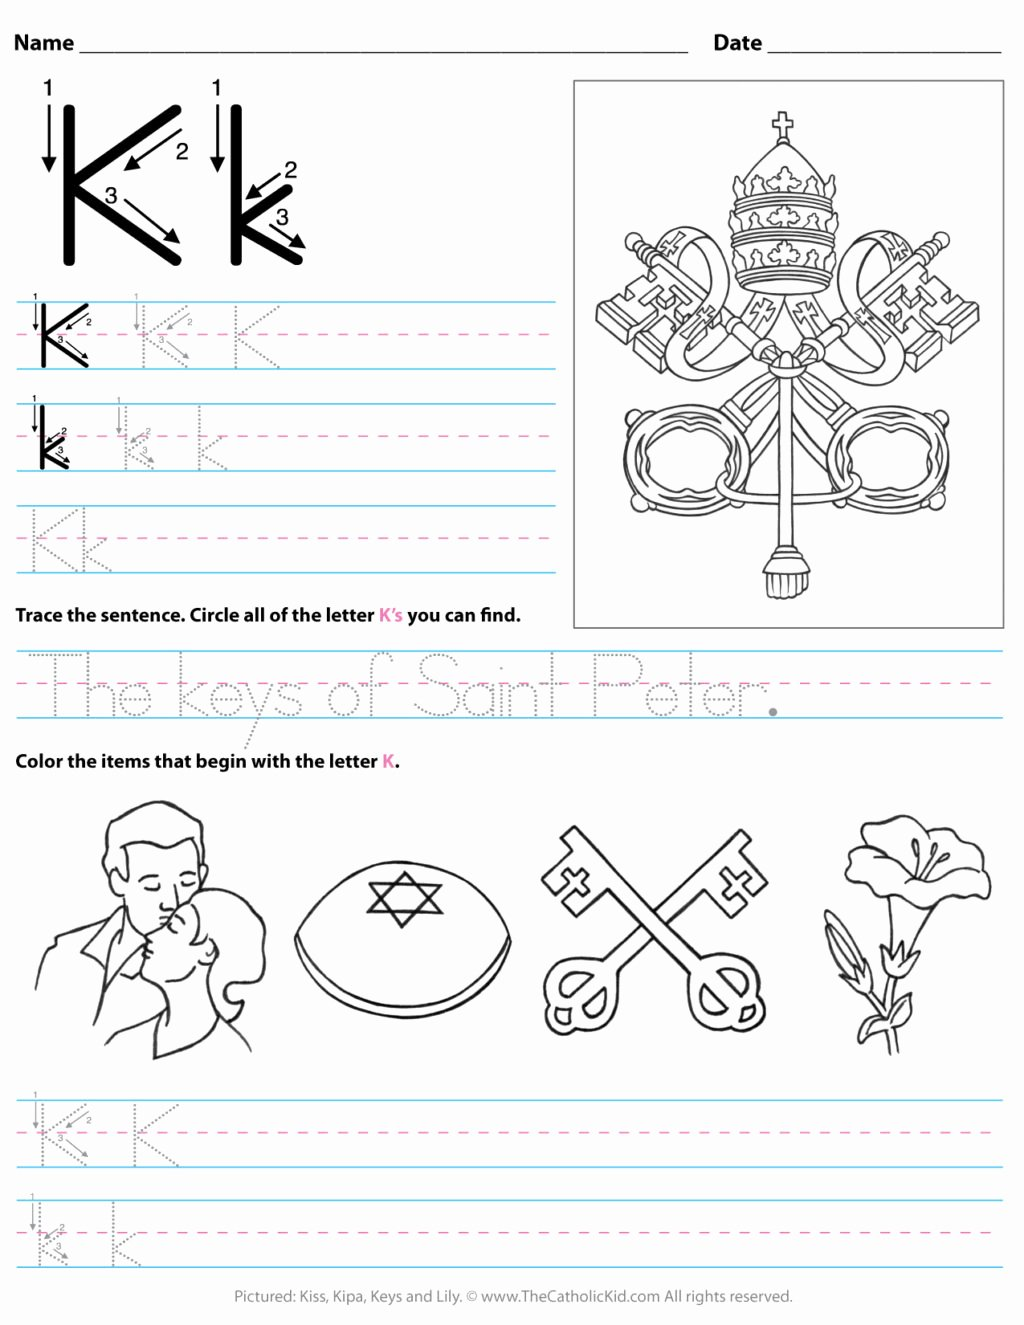 The Letter K Worksheets for Preschoolers Awesome Worksheet Freets for toddlers Printable K Preschool Letter